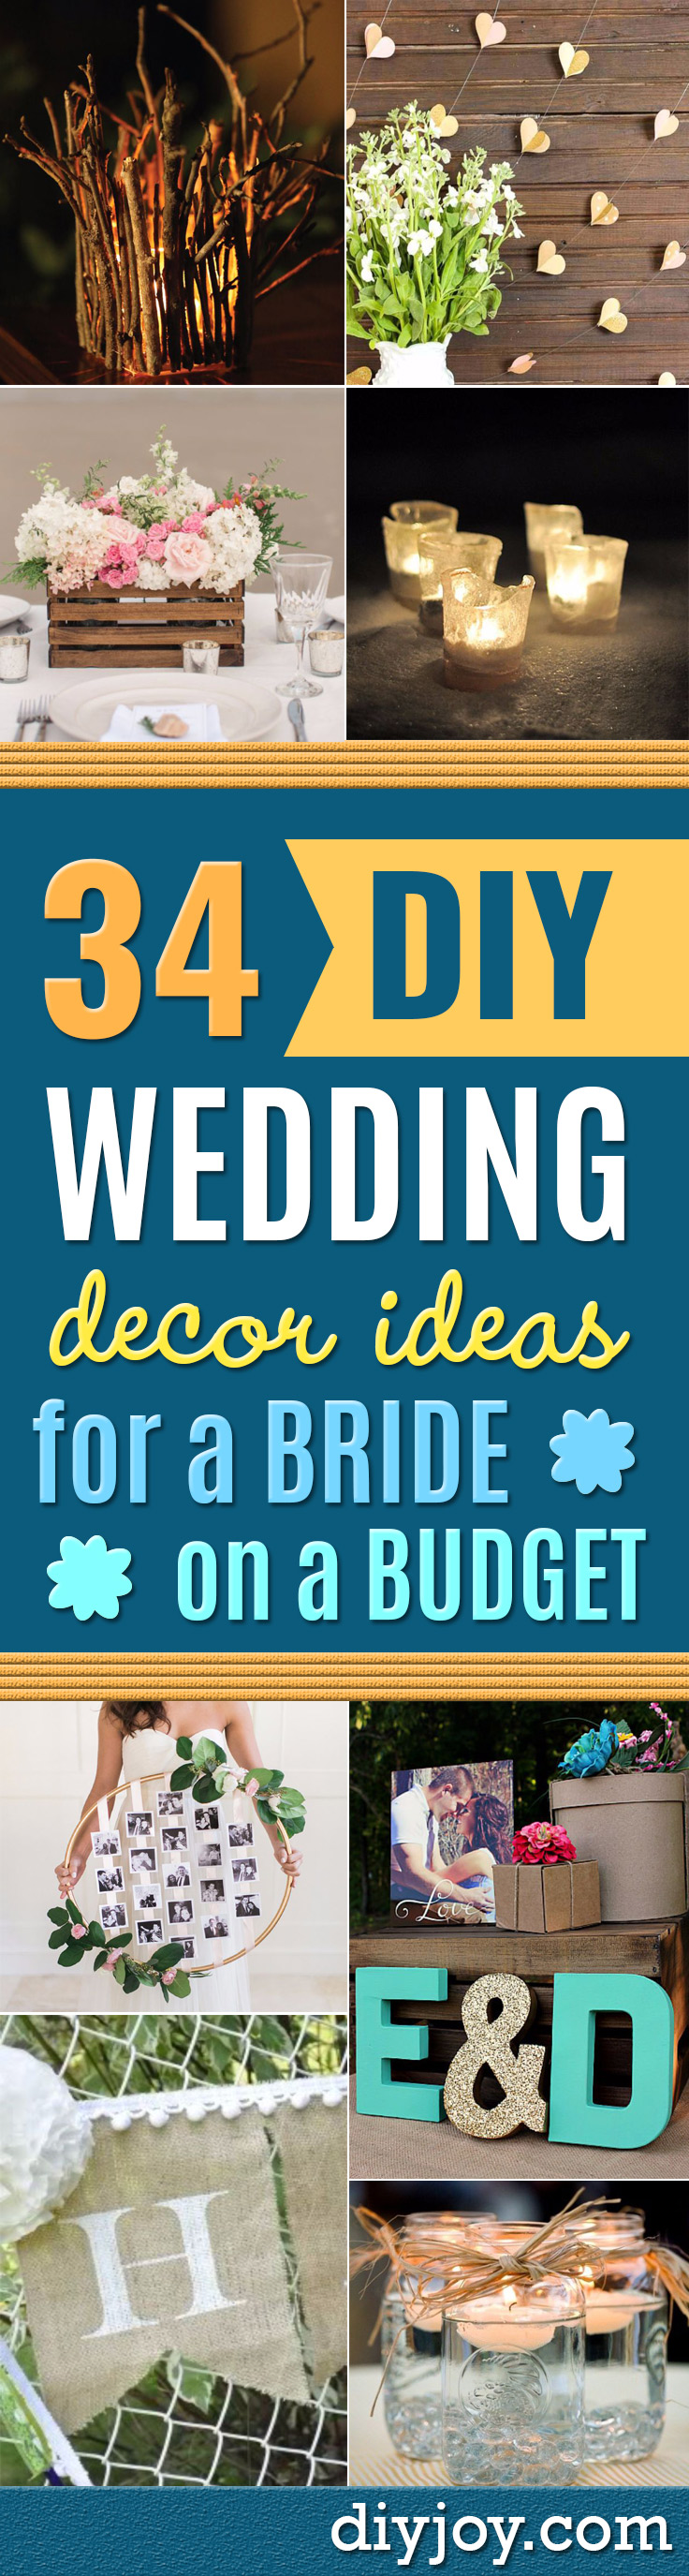 cheap diy wedding decor ideas - Easy and Cheap Project Ideas with Things Found in Dollar Stores - Simple and Creative Backdrops for Receptions On A Budget - Rustic, Elegant, and Vintage Paper Ideas for Centerpieces, and Vases